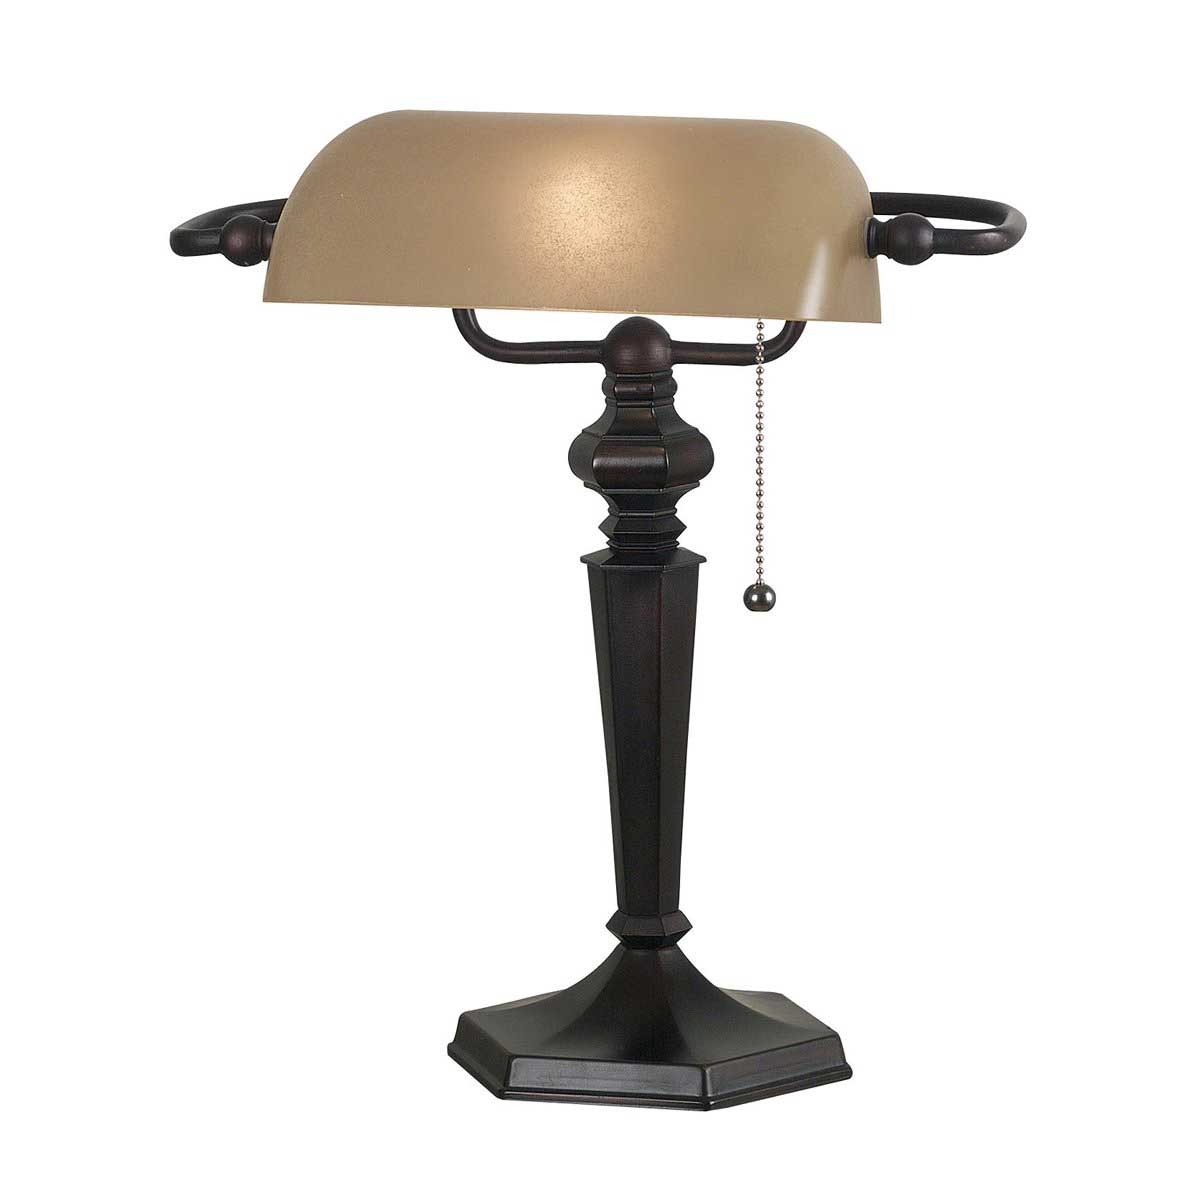 Chesapeake Bankers Desk Lamp for Home by Kenroy